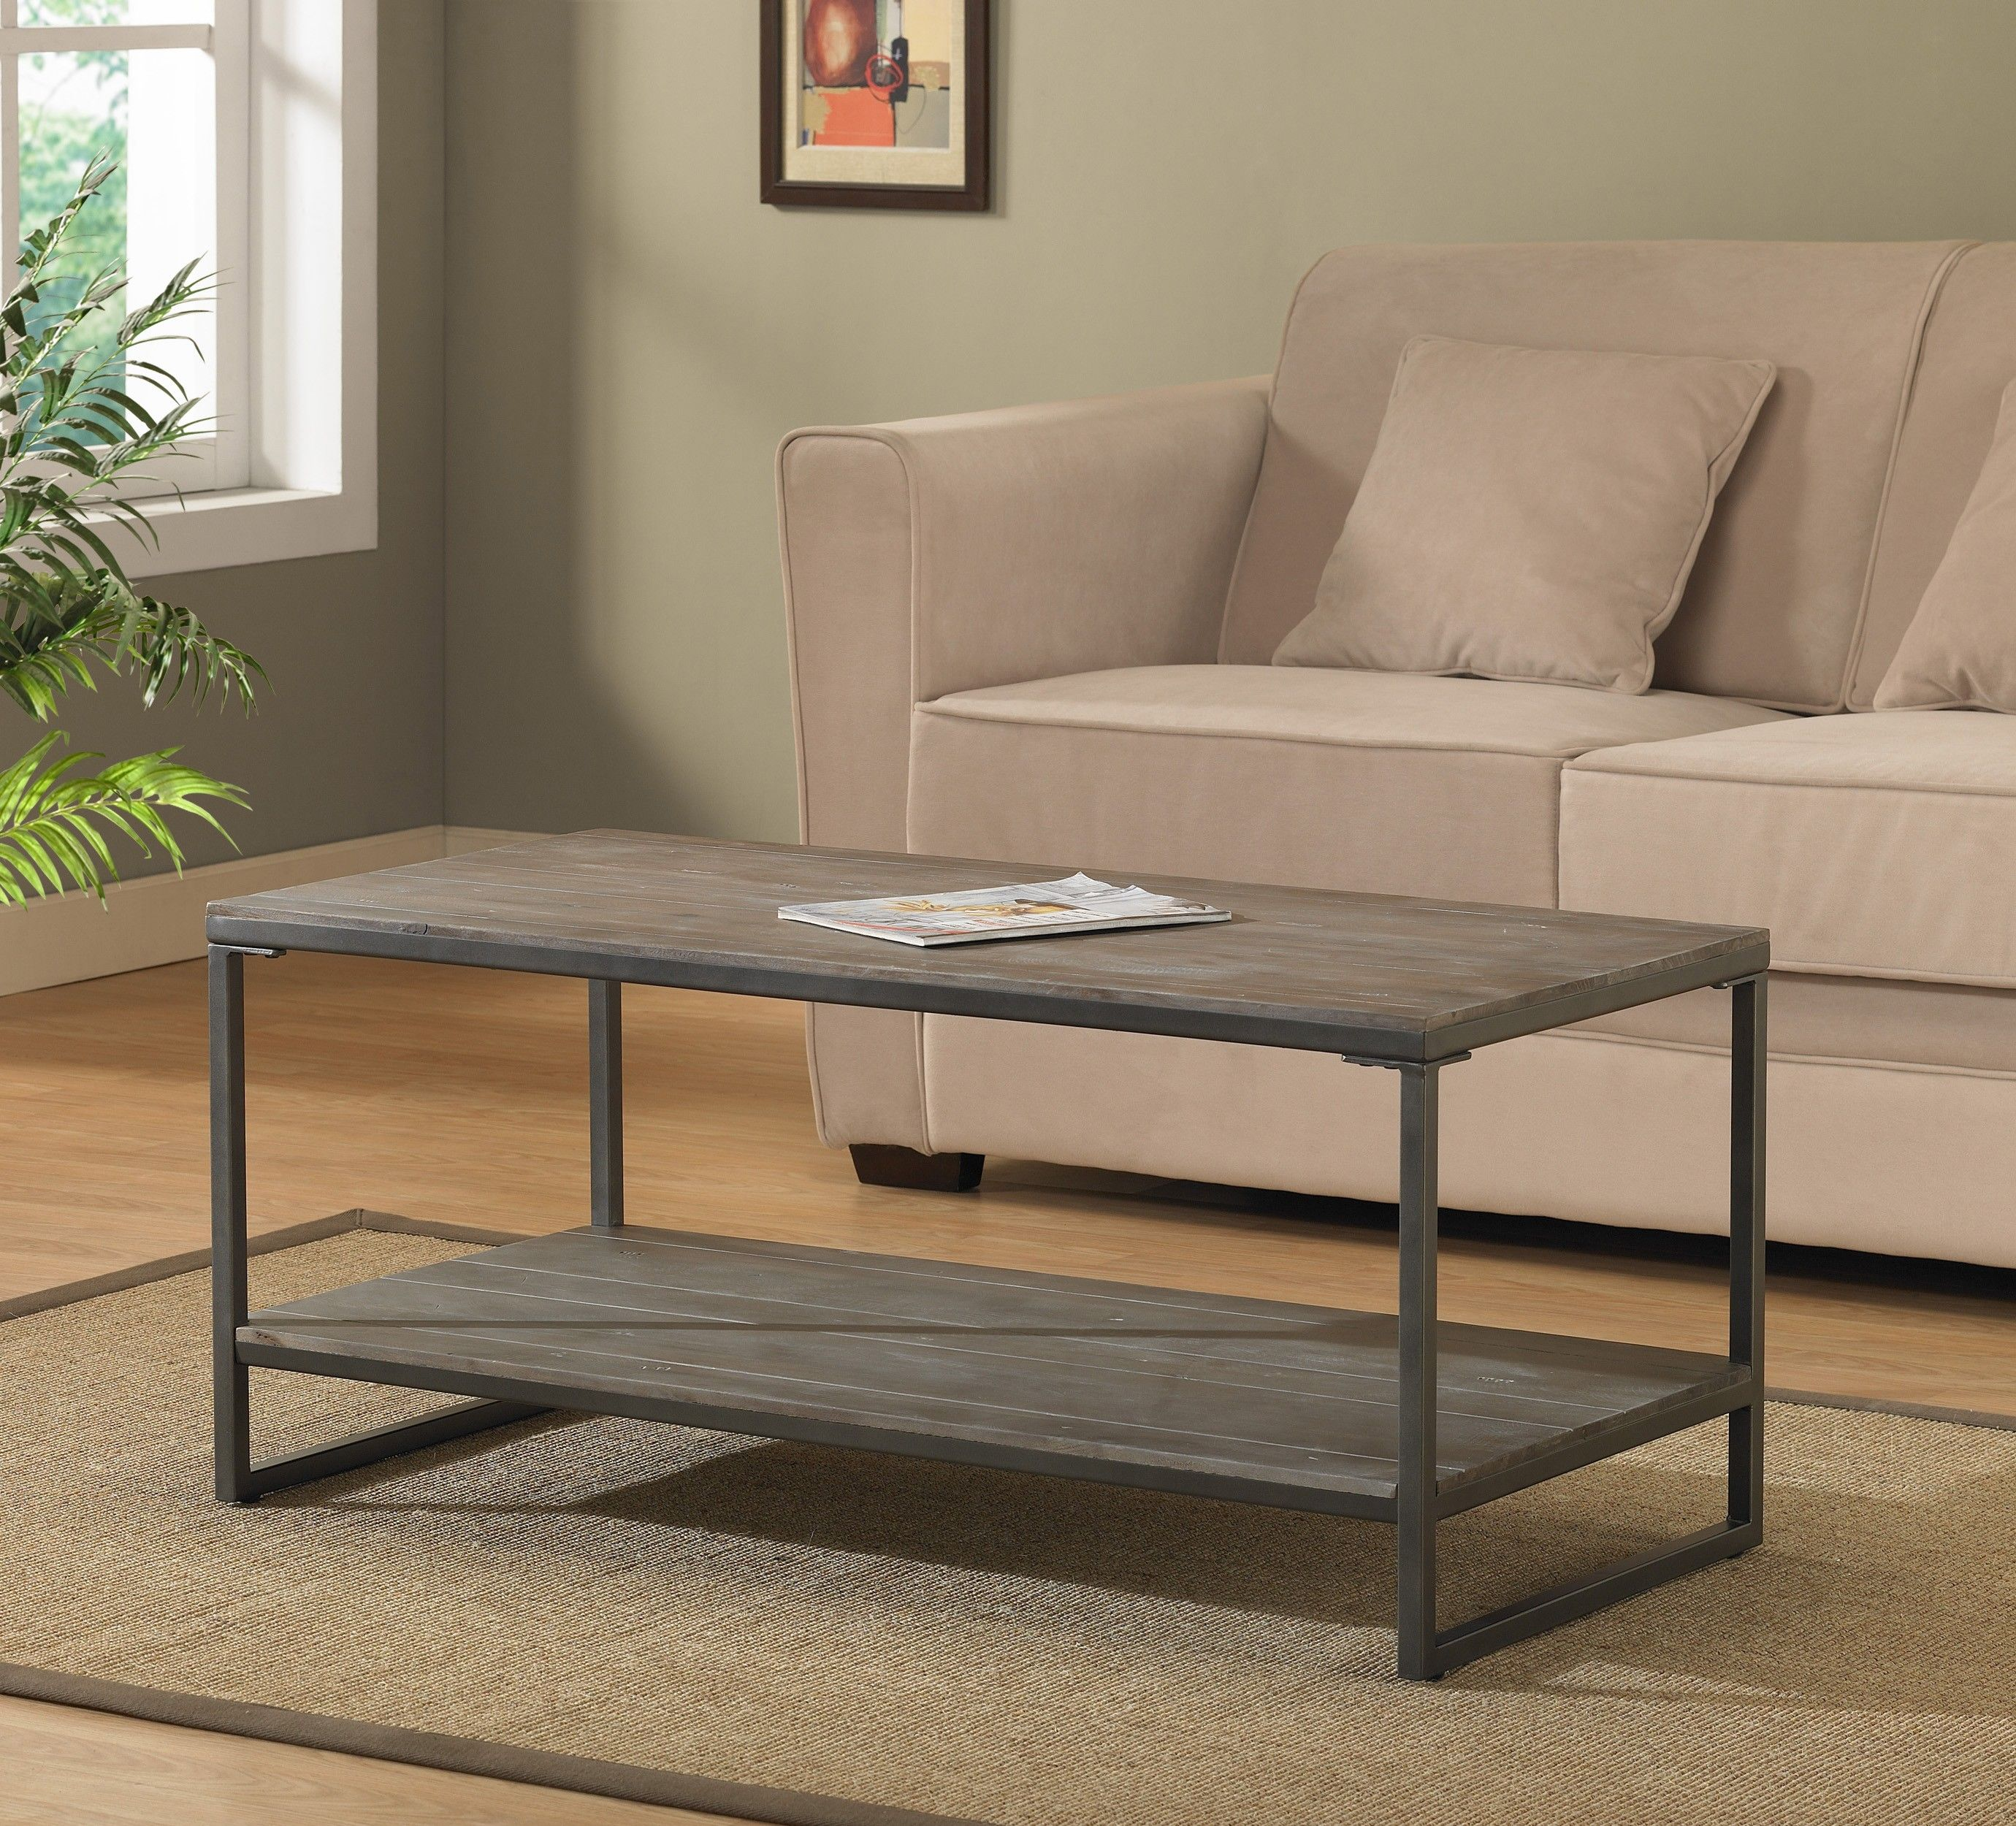 Overstock Com Online Shopping Bedding Furniture Electronics Jewelry Clothing More Coffee Table Coffee Table With Shelf Sofa End Tables [ 2500 x 2760 Pixel ]